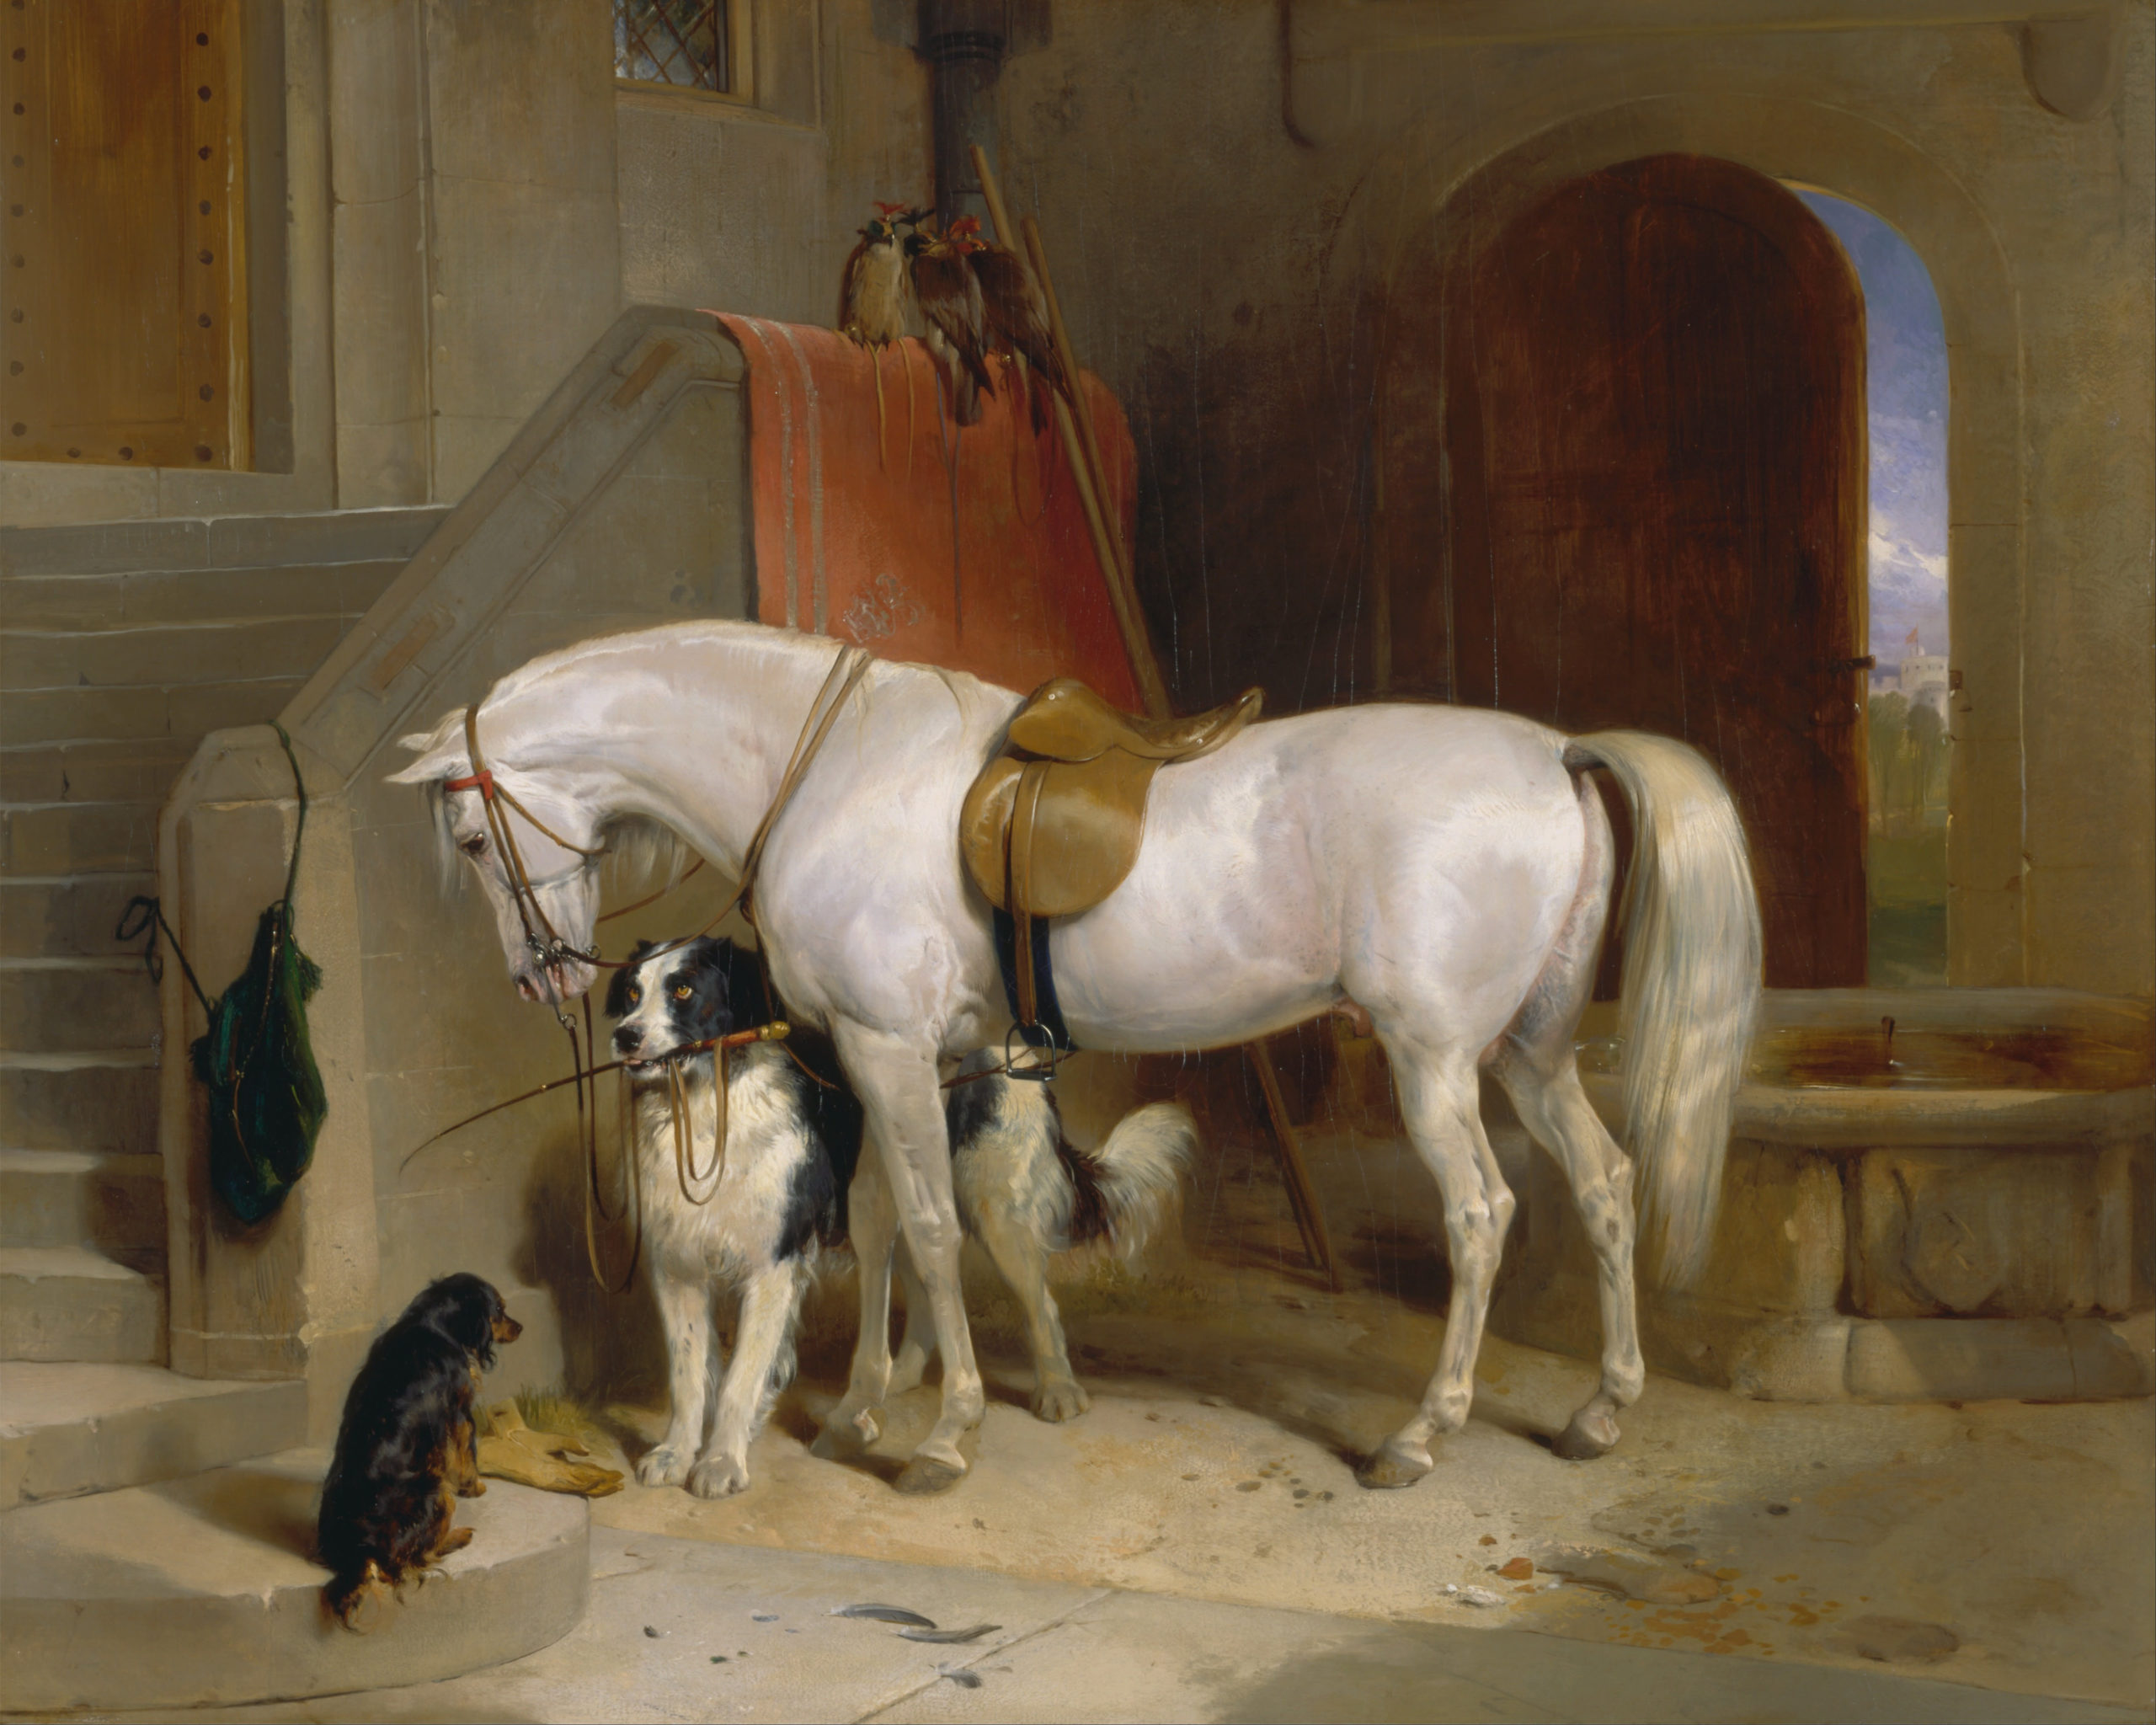 Sir_Edwin_Henry_Landseer_-_Favourites,_the_Property_of_H.R.H._Prince_George_of_Cambridge_-_Google_Art_Project